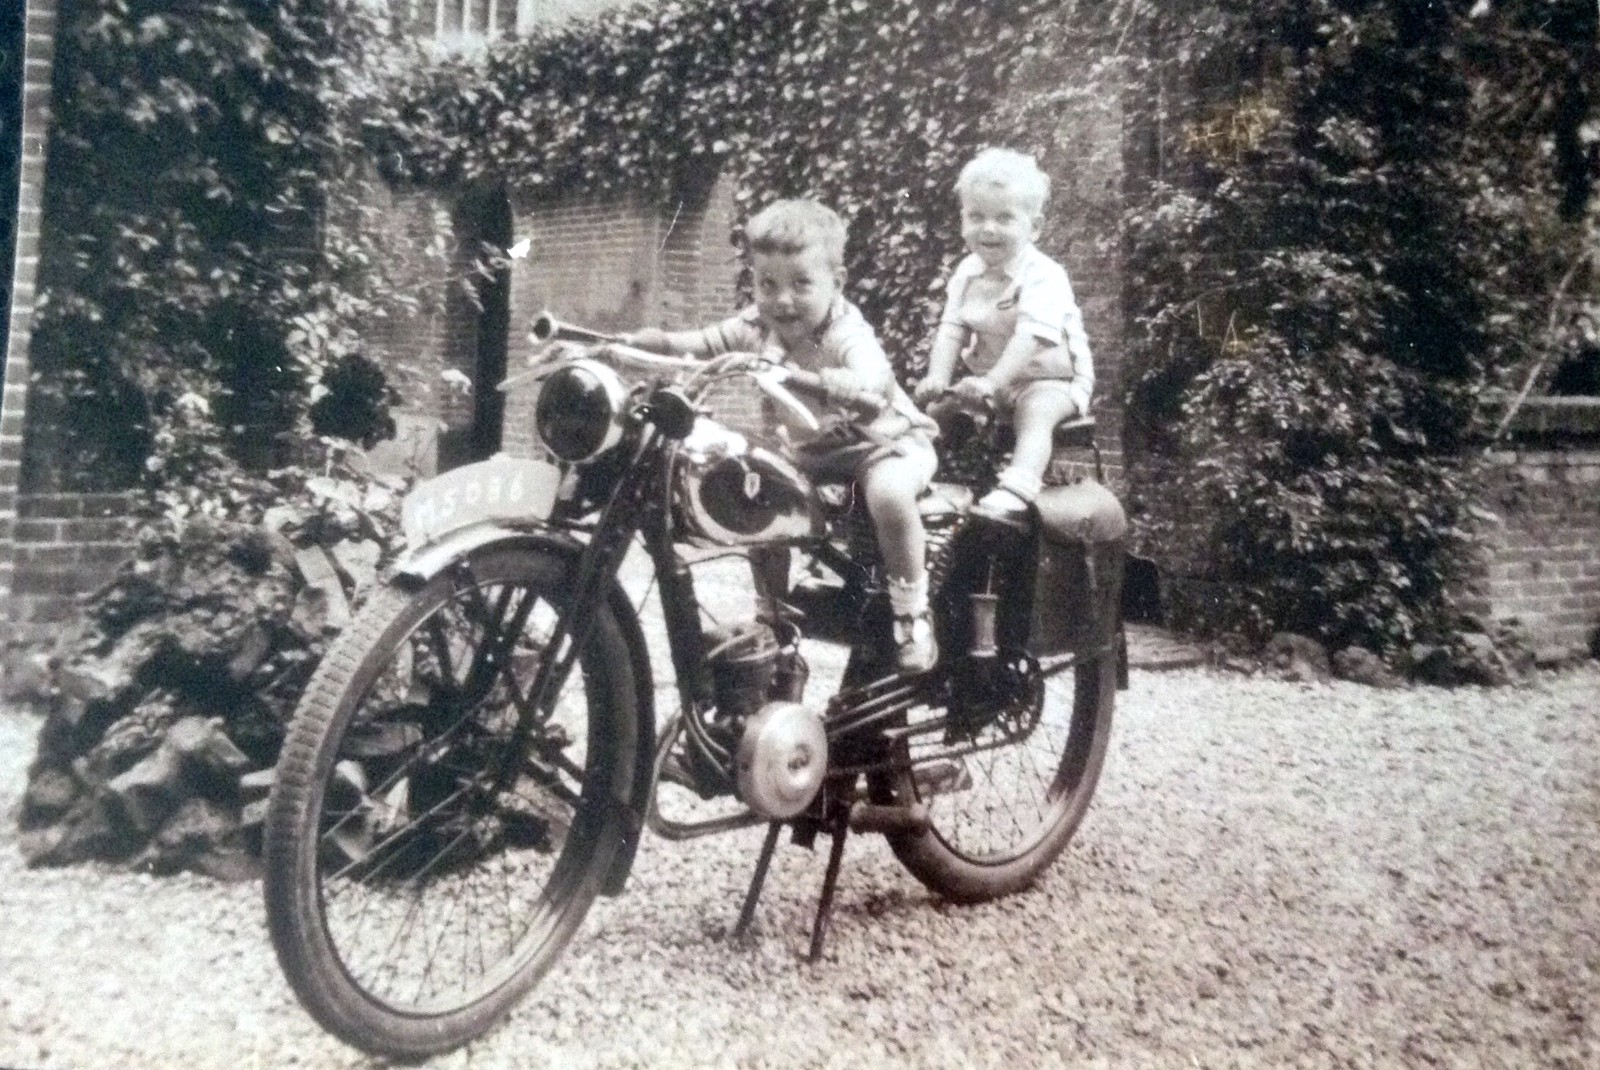 Tom and his older brother in the summer of 1940, the Netherlands